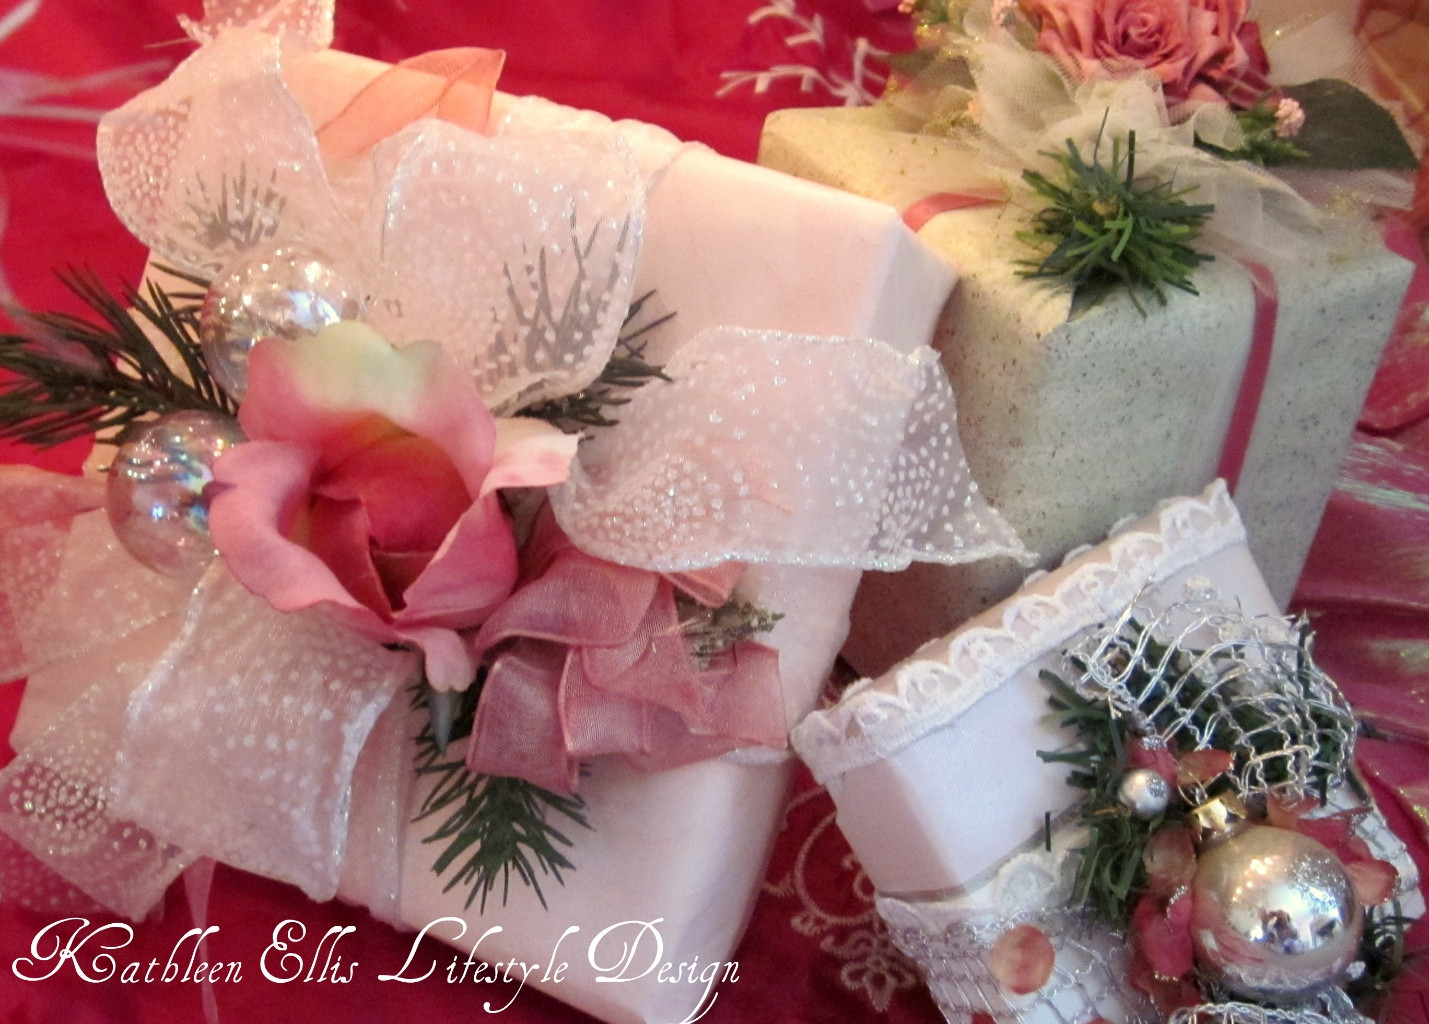 Best ideas about Christmas Gift Wrapping Ideas Elegant . Save or Pin Easy & Elegant t wrapping Presents with Presence Now.